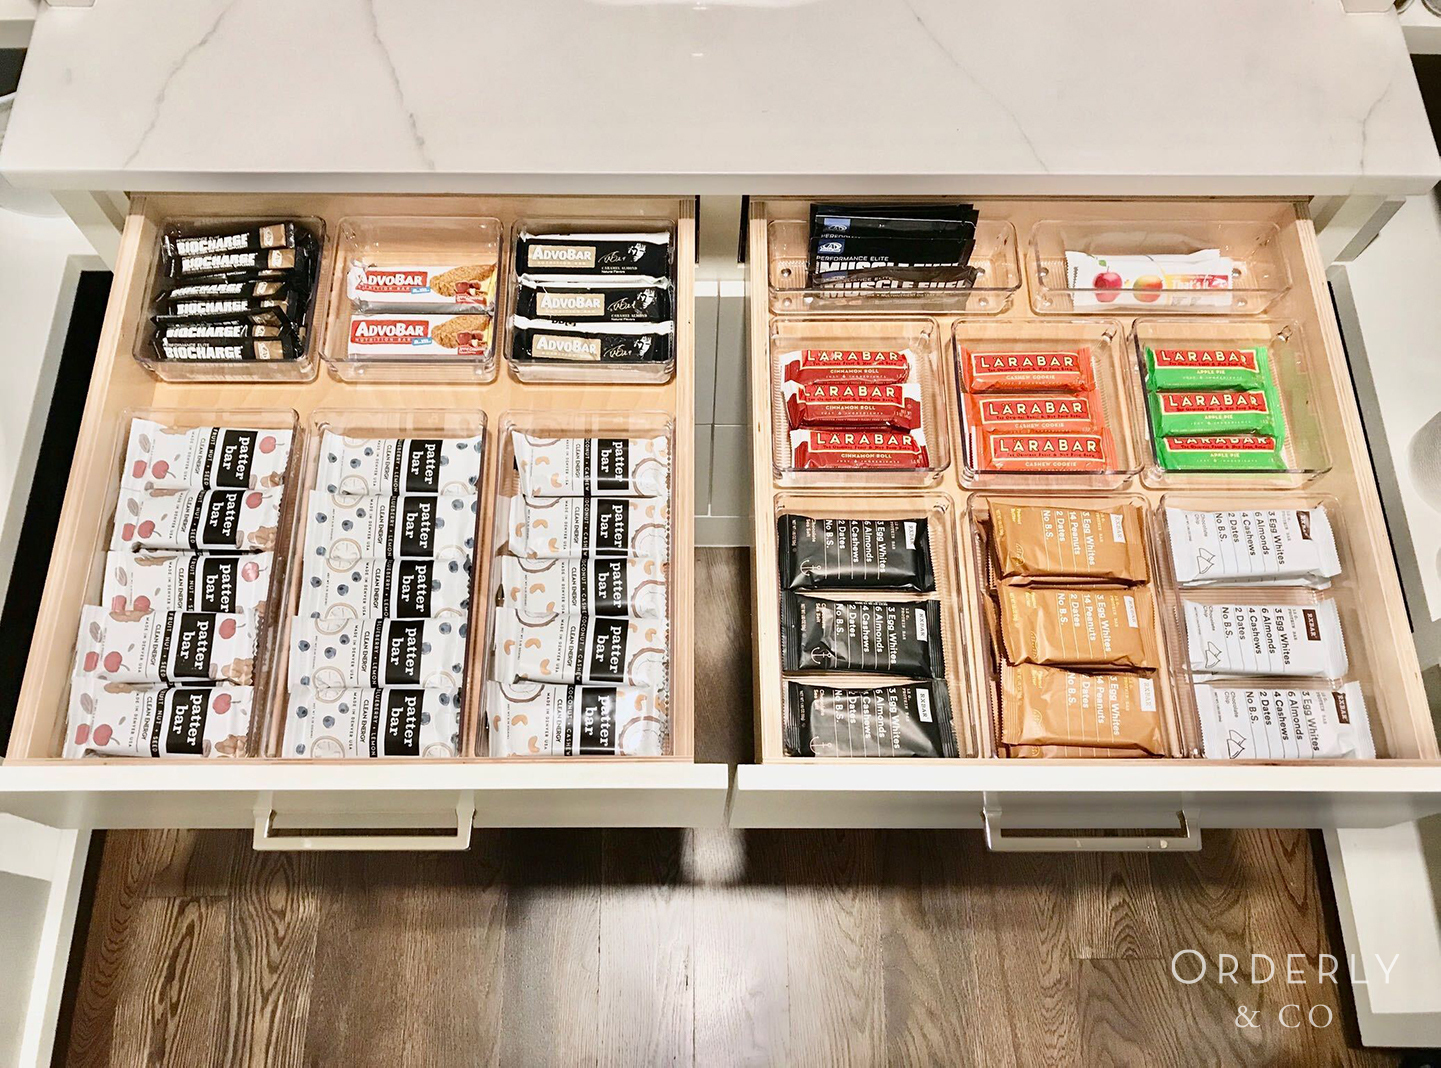 Kitchen Drawer Professionally Organized by Orderly & Co. in Denver, CO